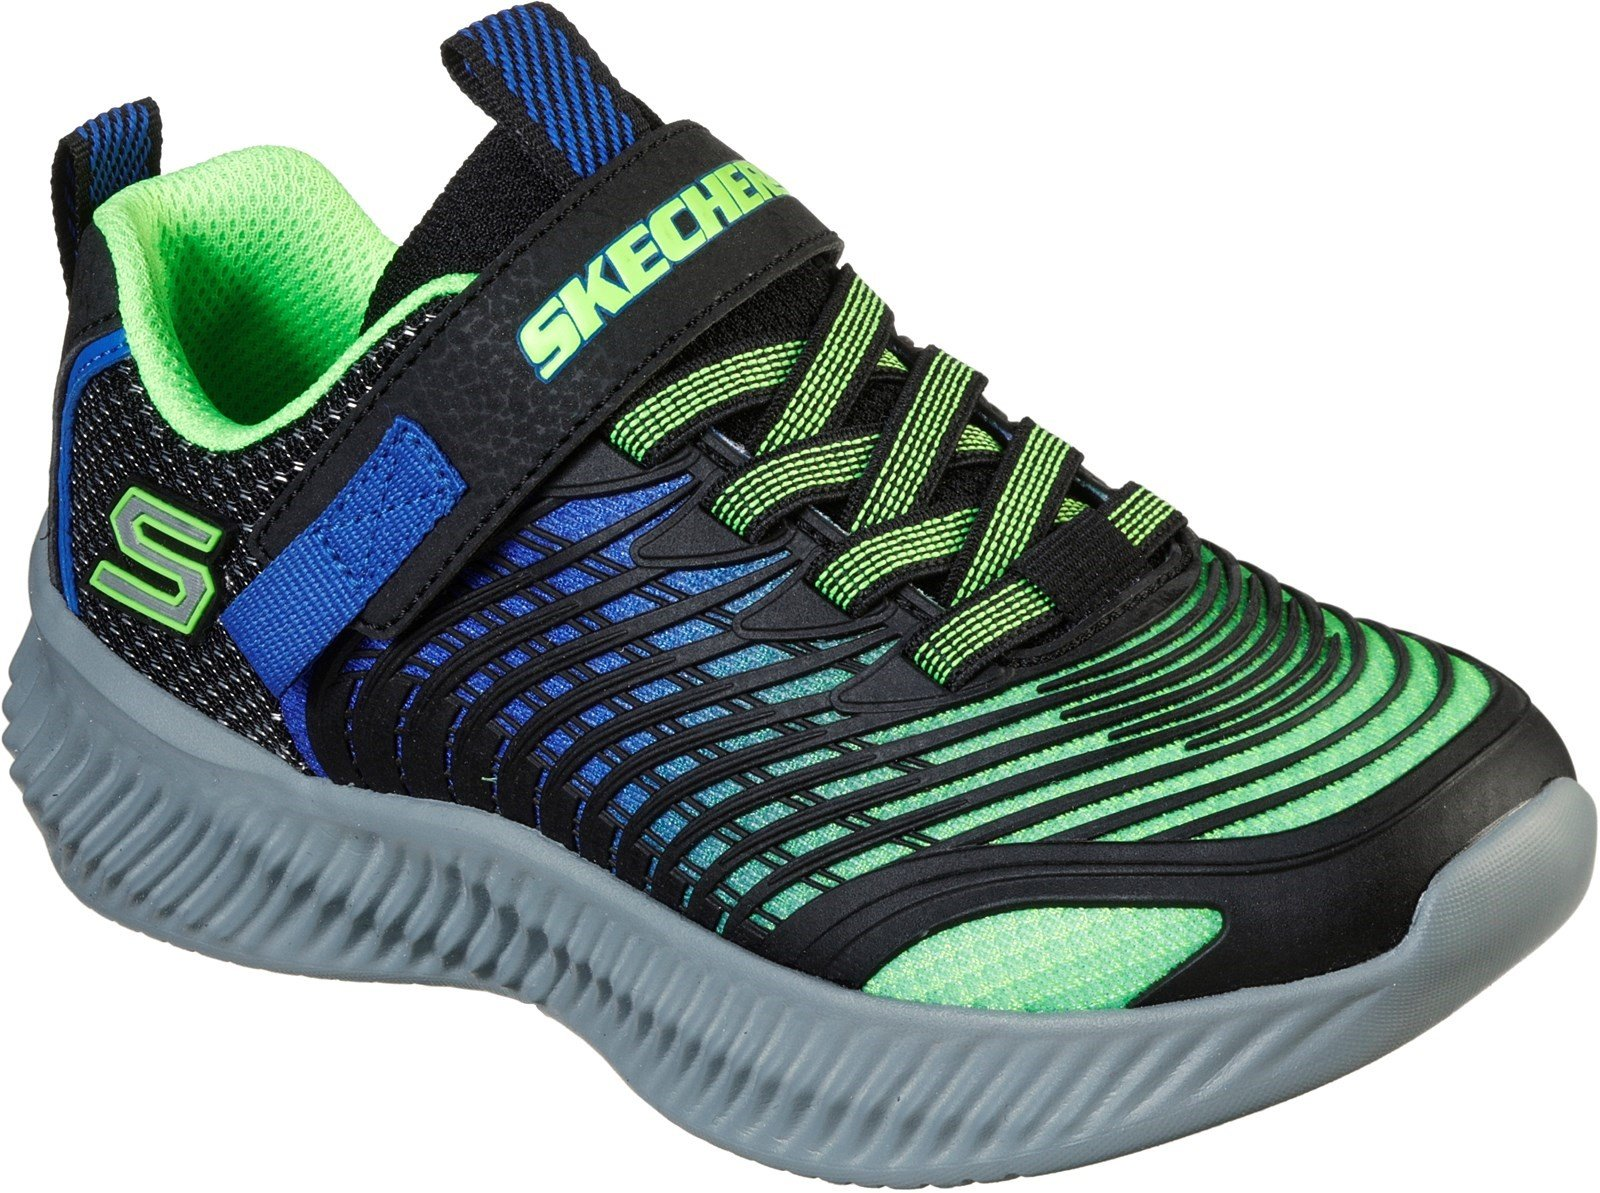 Skechers Kid's OpticoSports Trainer Various Colours 31175 - Lime/Blue 9.5